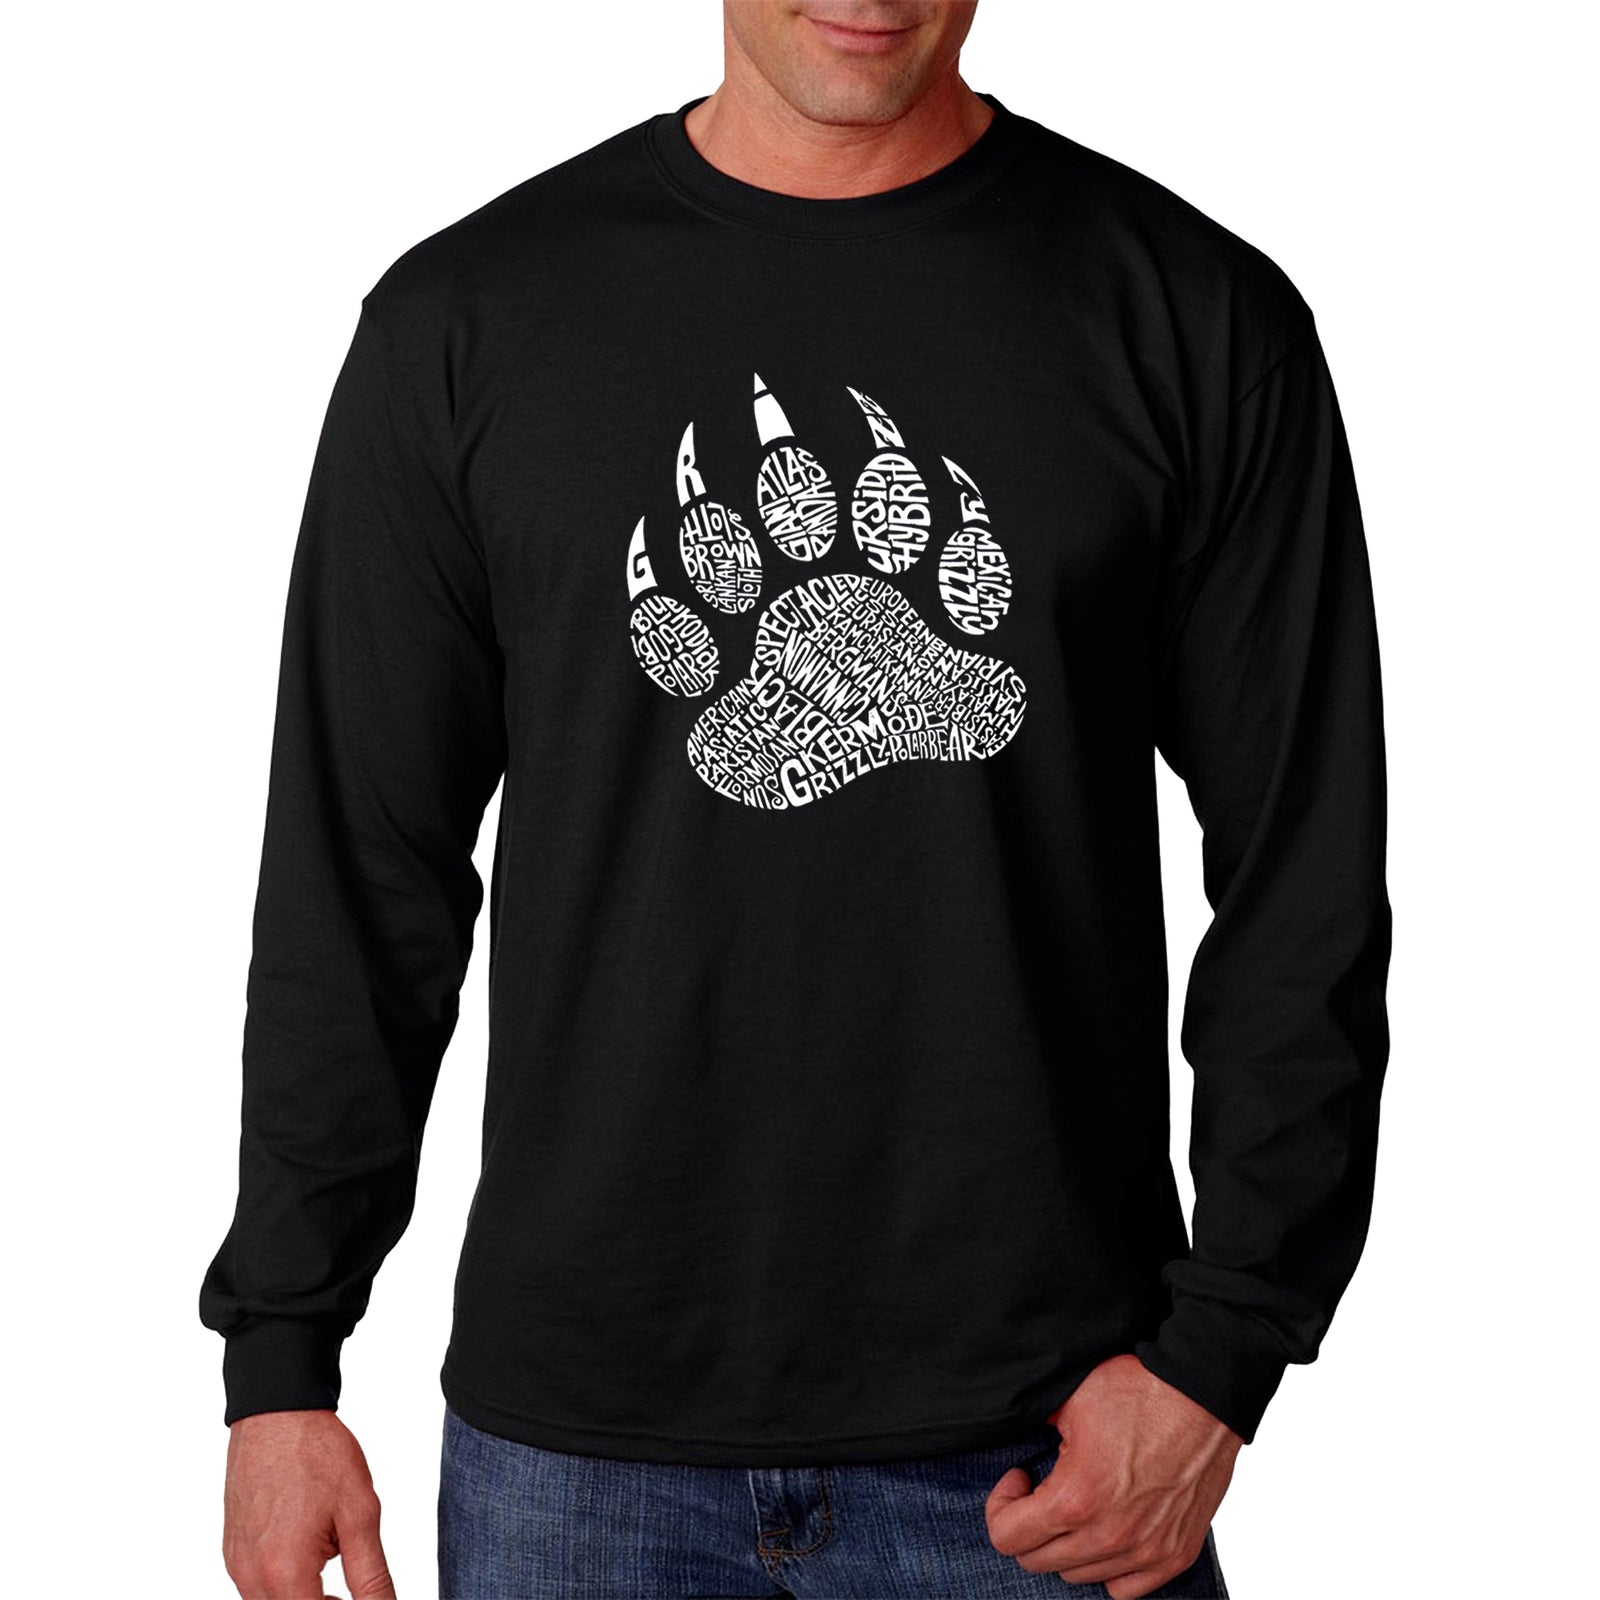 Men's Word Art Long Sleeve T-shirt - Types of Bears